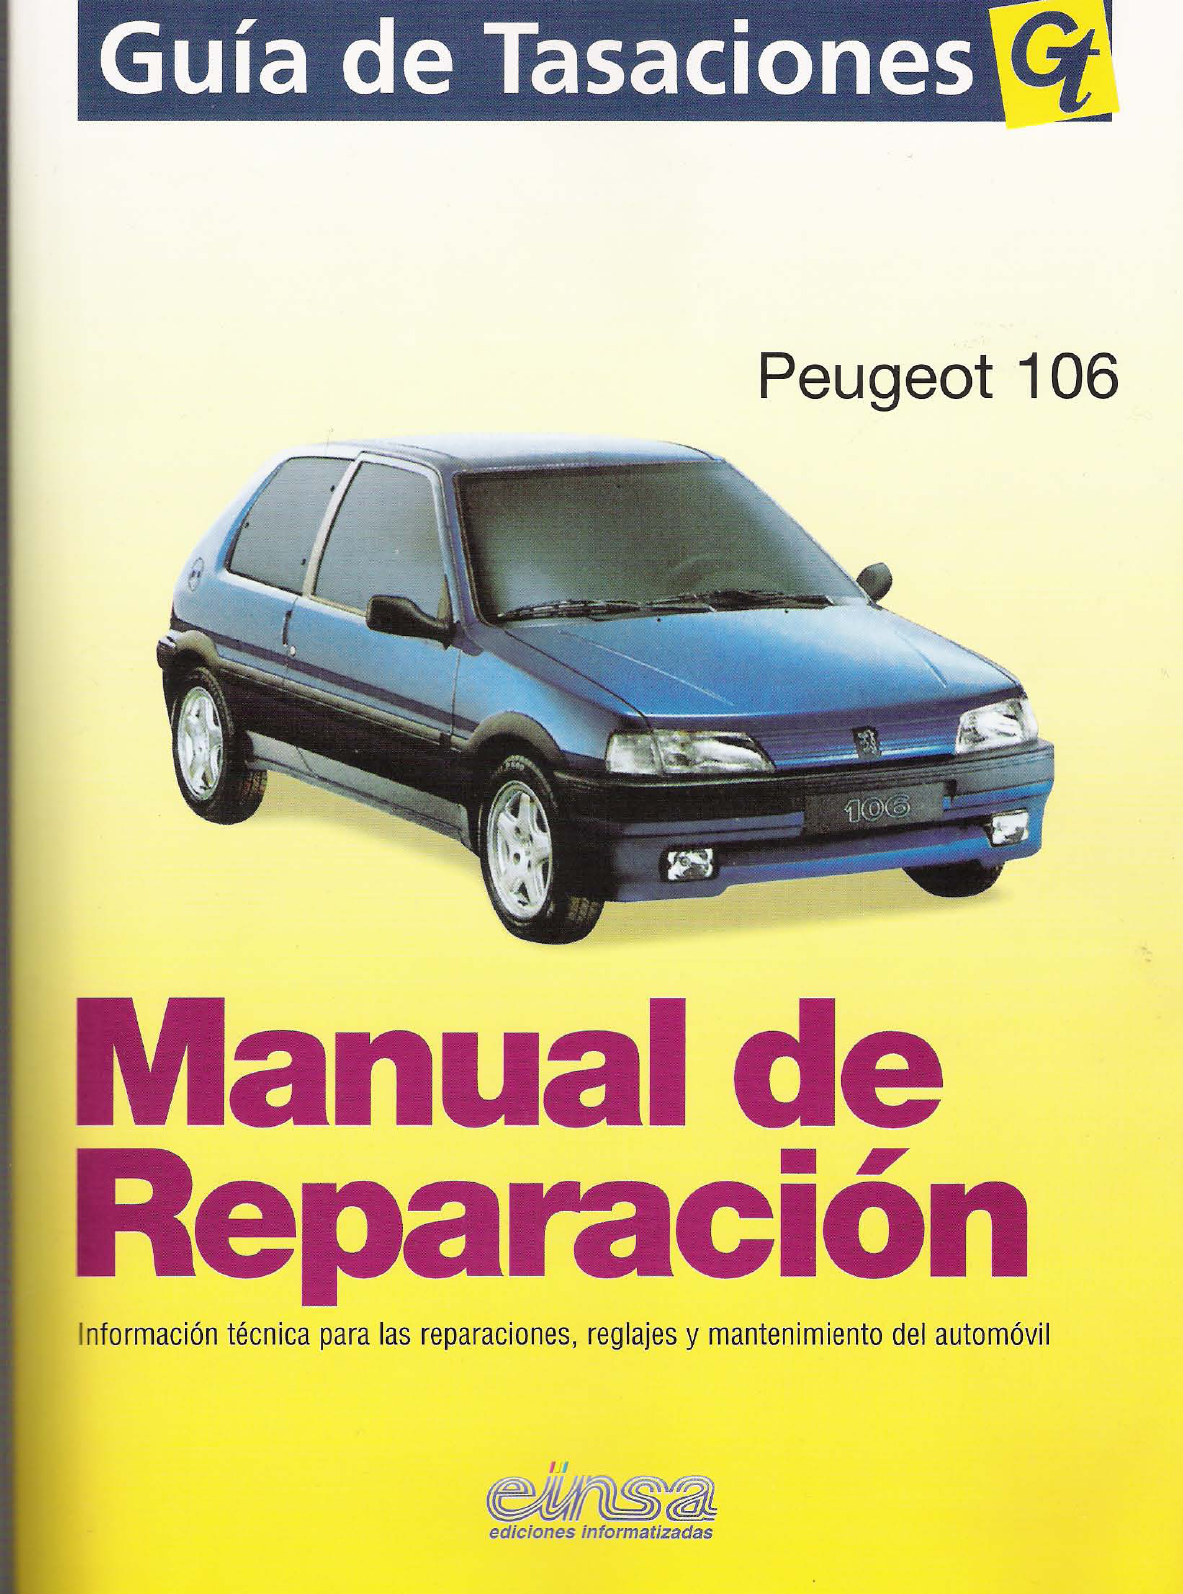 peugeot 106 workshop manual spanish pdf rh manuals co 2001 peugeot 106 owner's manual peugeot 106 service manual pdf